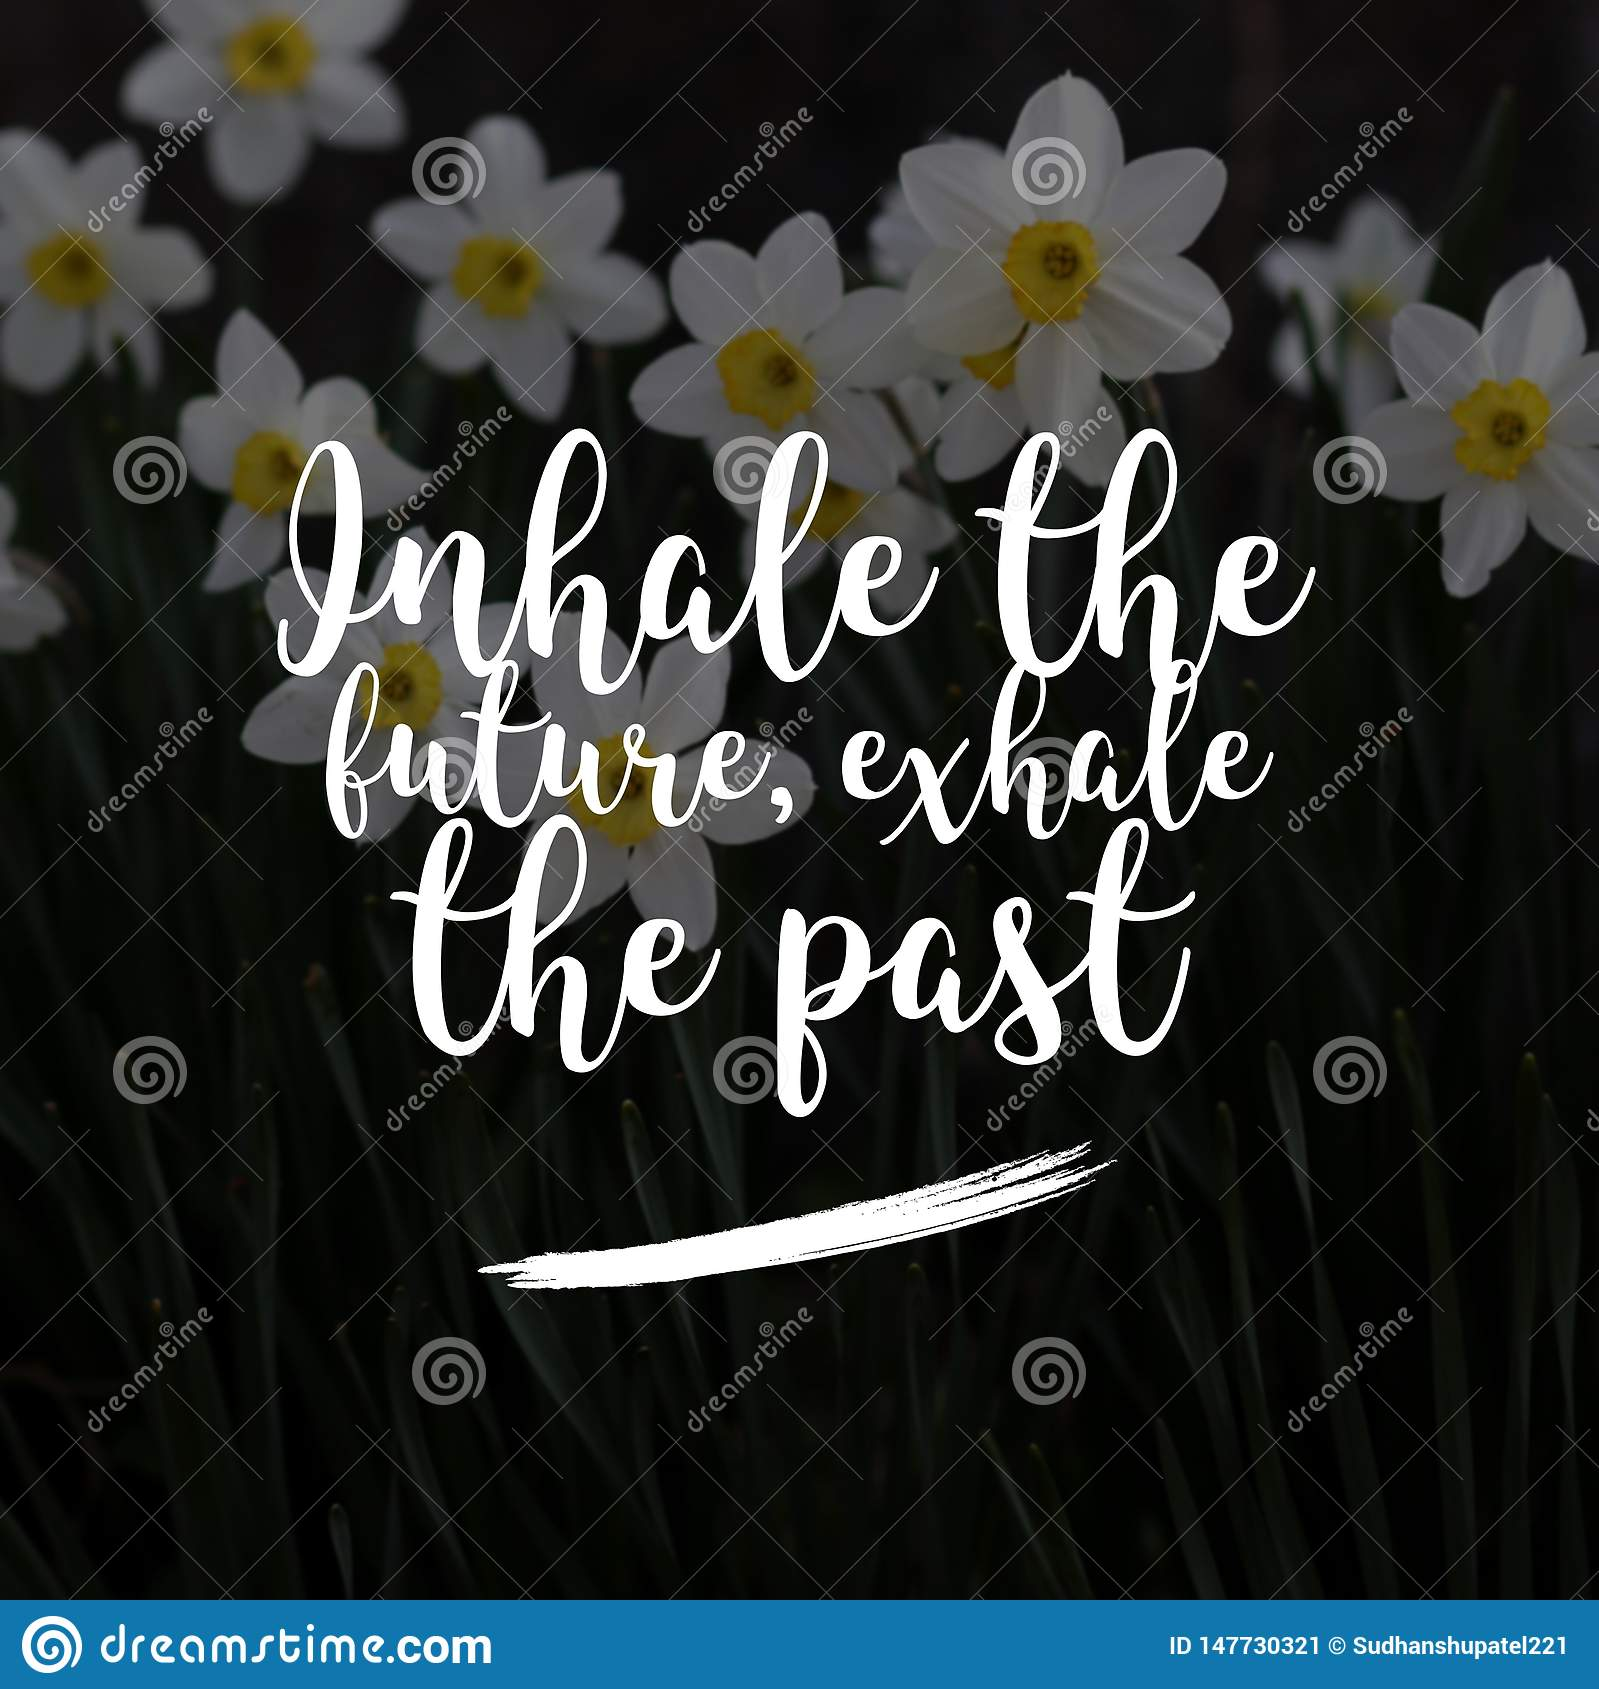 Motivational quotes for life and success. Inhale the future, exhale the past.